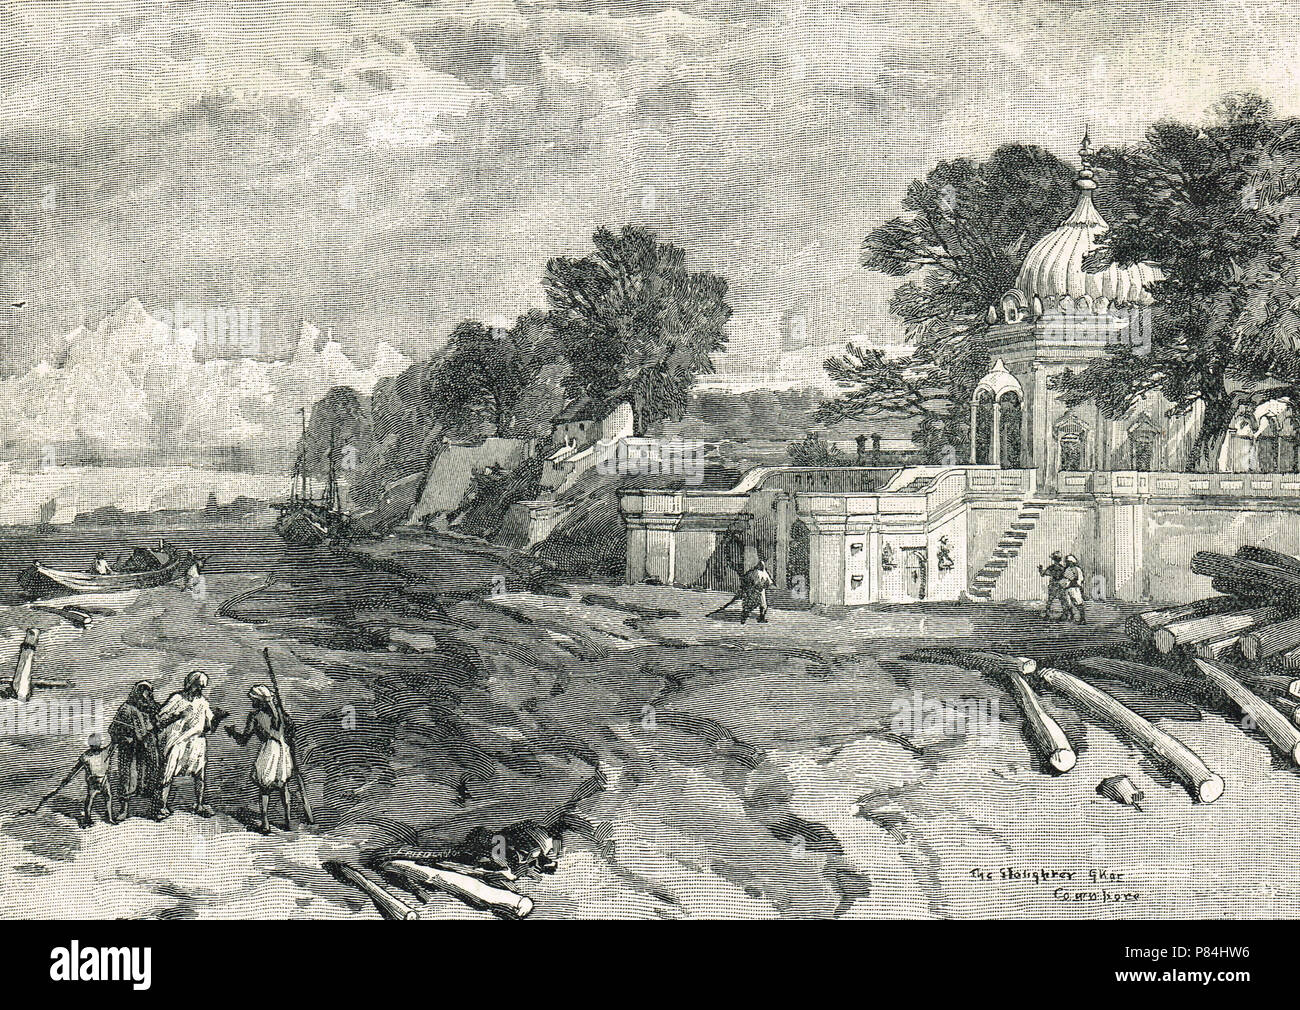 The Slaughter Ghat, or massacre Ghat, Cawnpore (present day Kanpur), India. Site of the slaughter of survivors of the siege of Cawnpore, on 27 June 1857, during the Indian Rebellion of 1857 - Stock Image